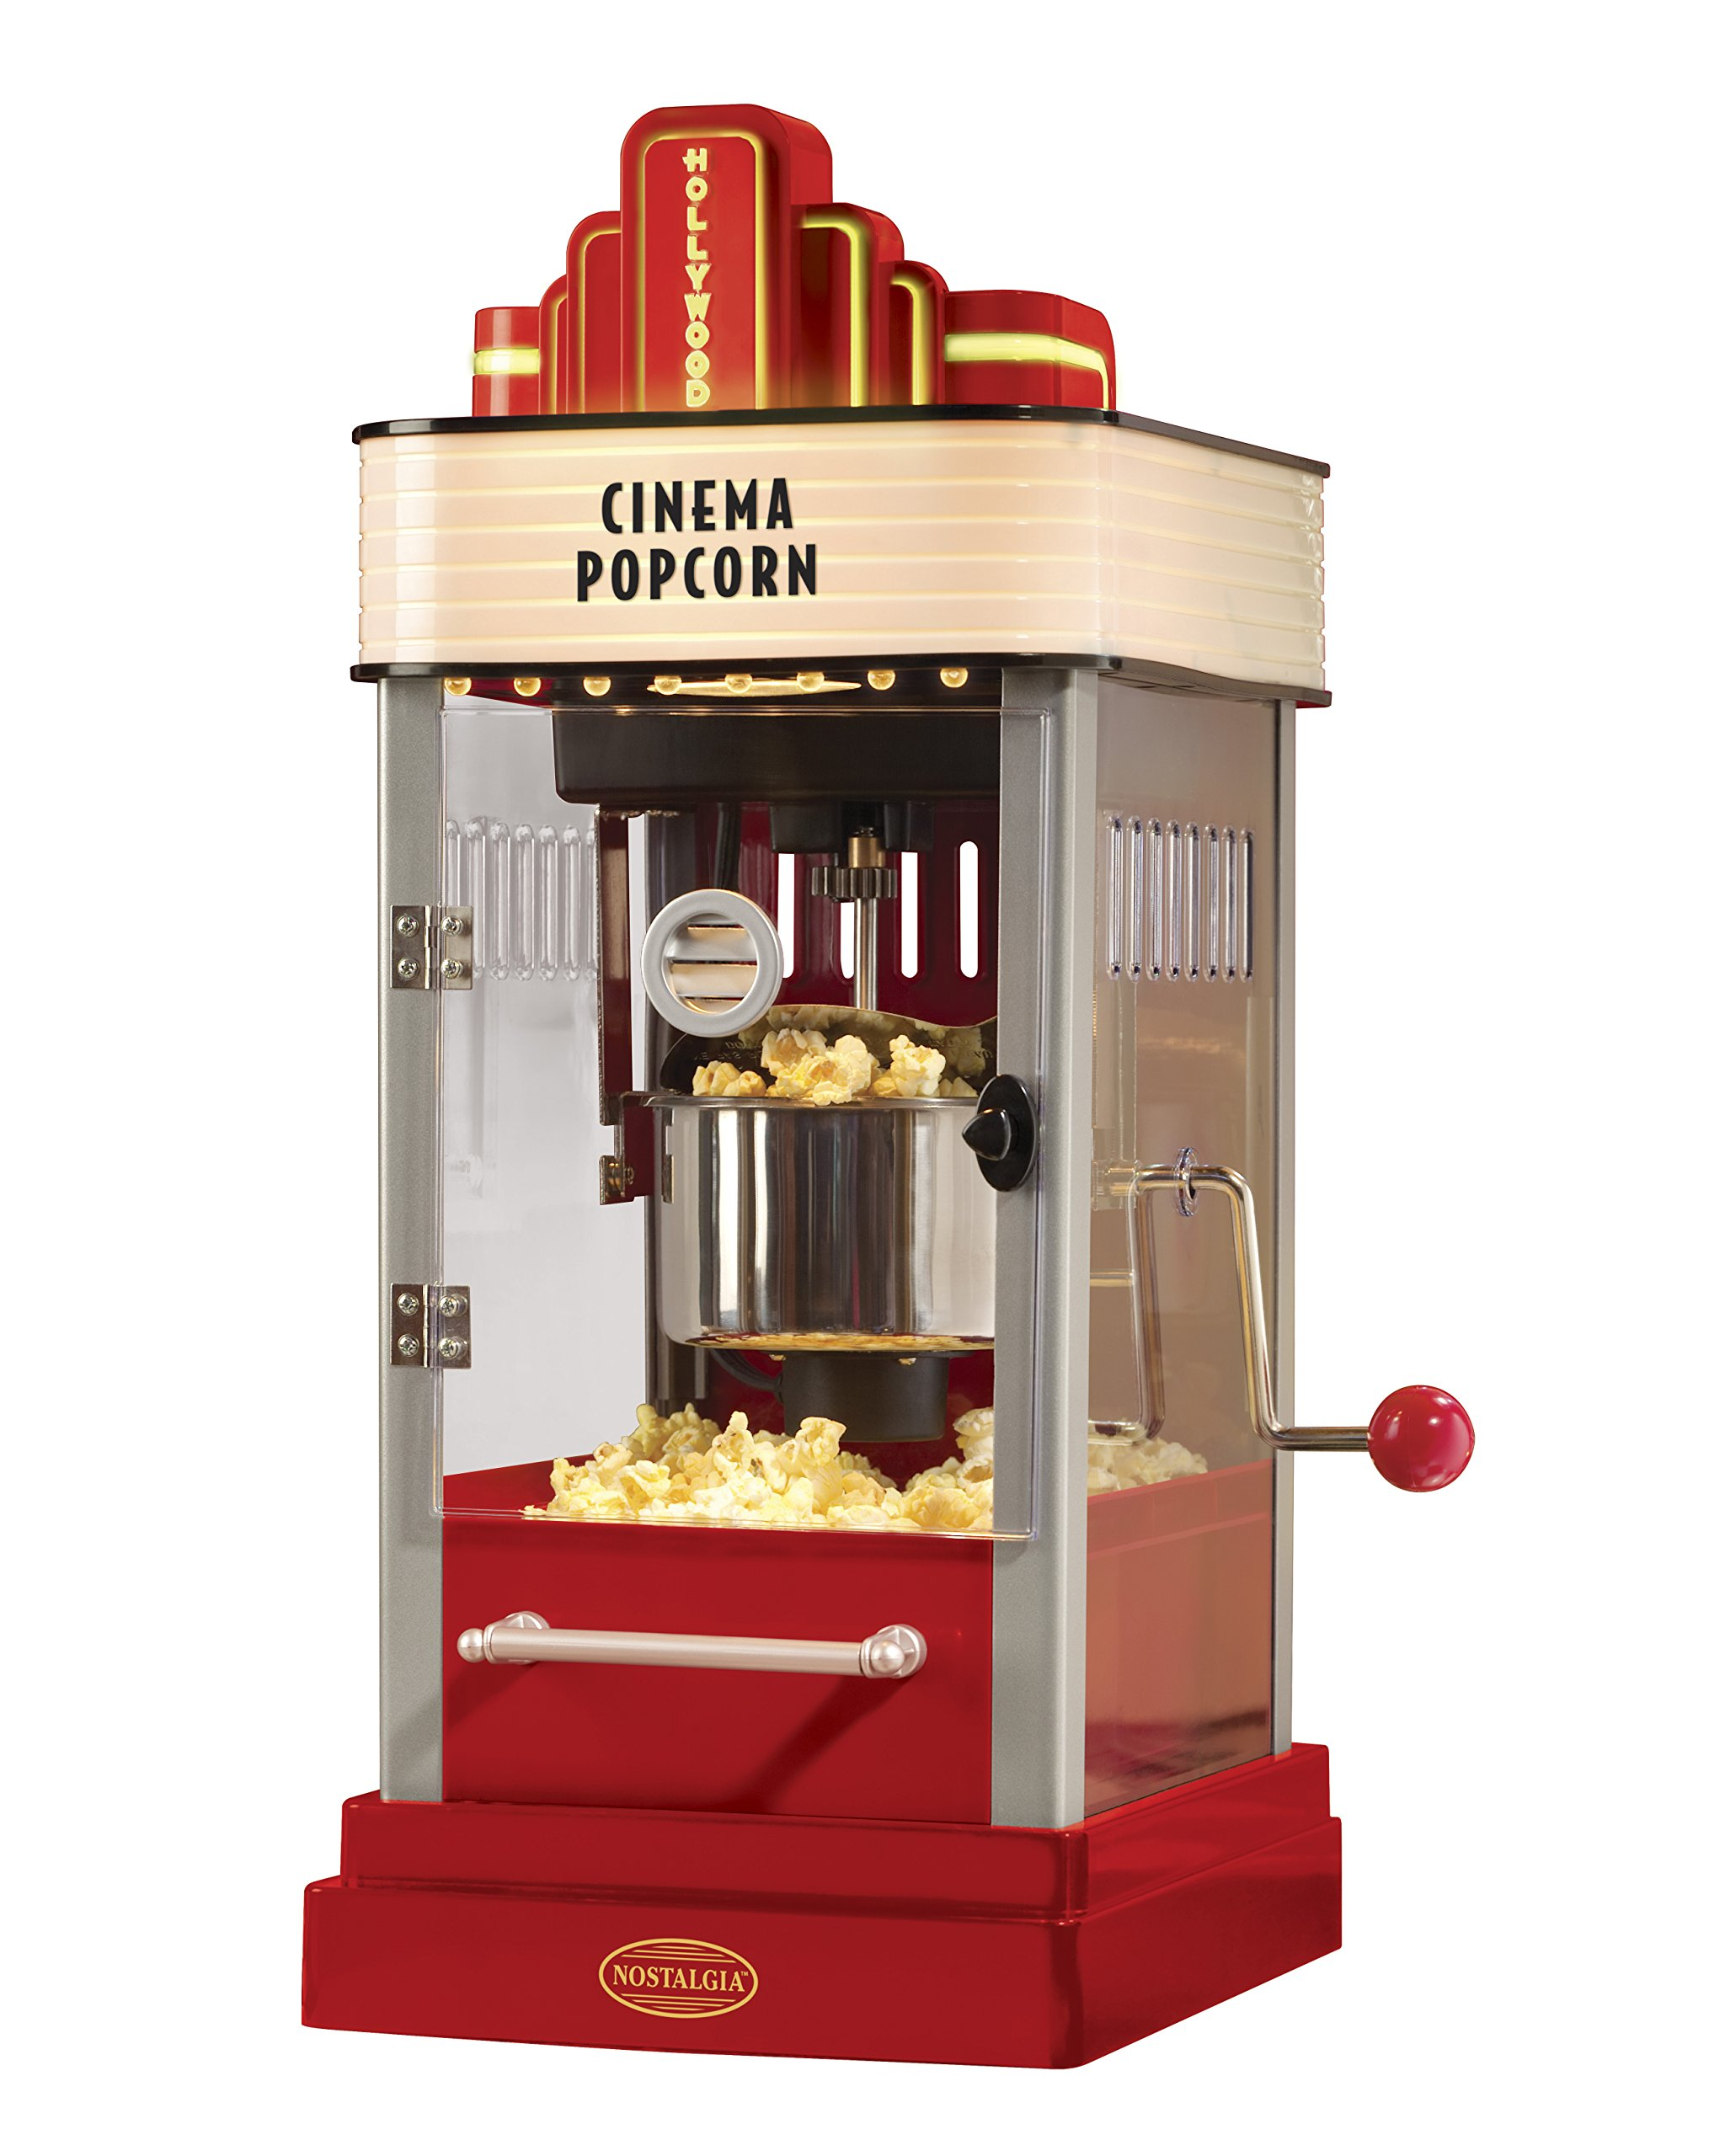 Nostalgia HKP200 2.5-Ounce Popcorn Popper with Lighted Marquee